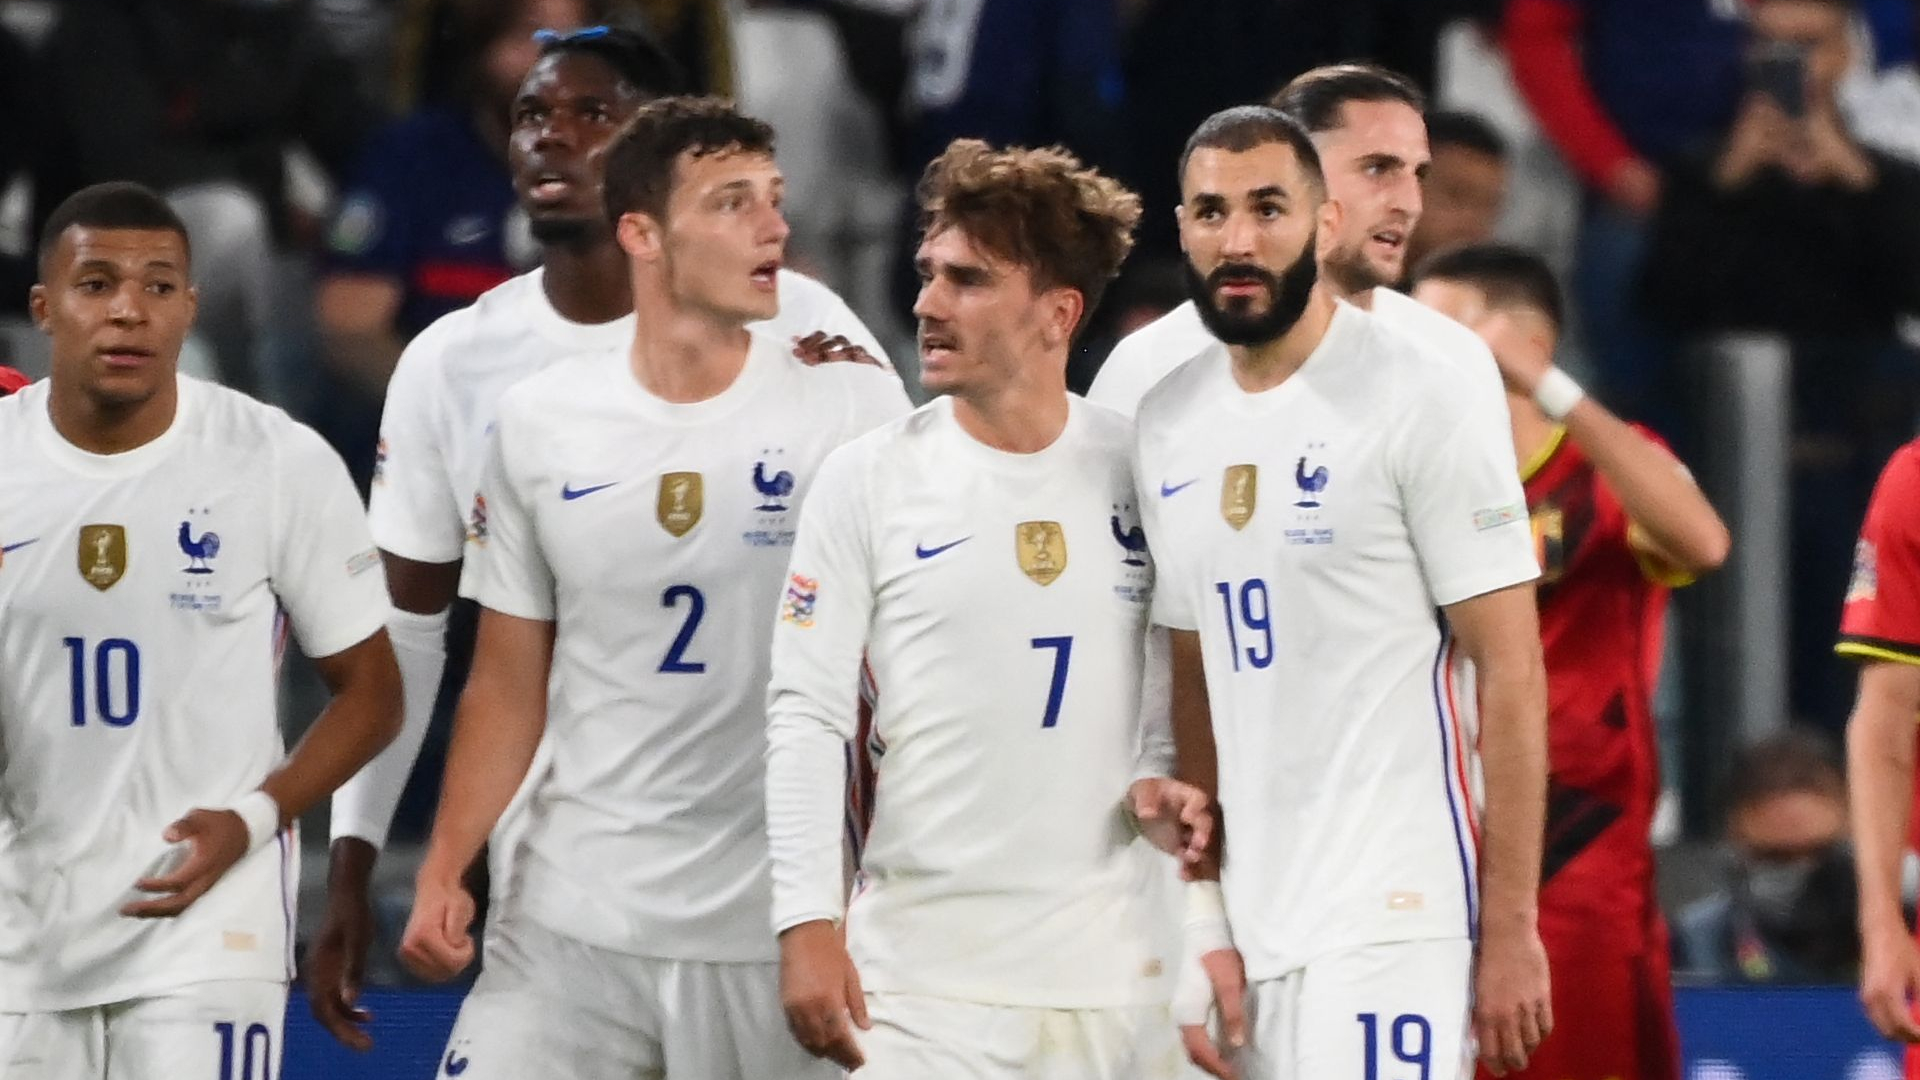 Spain vs France: TV channel, live stream, team news and preview